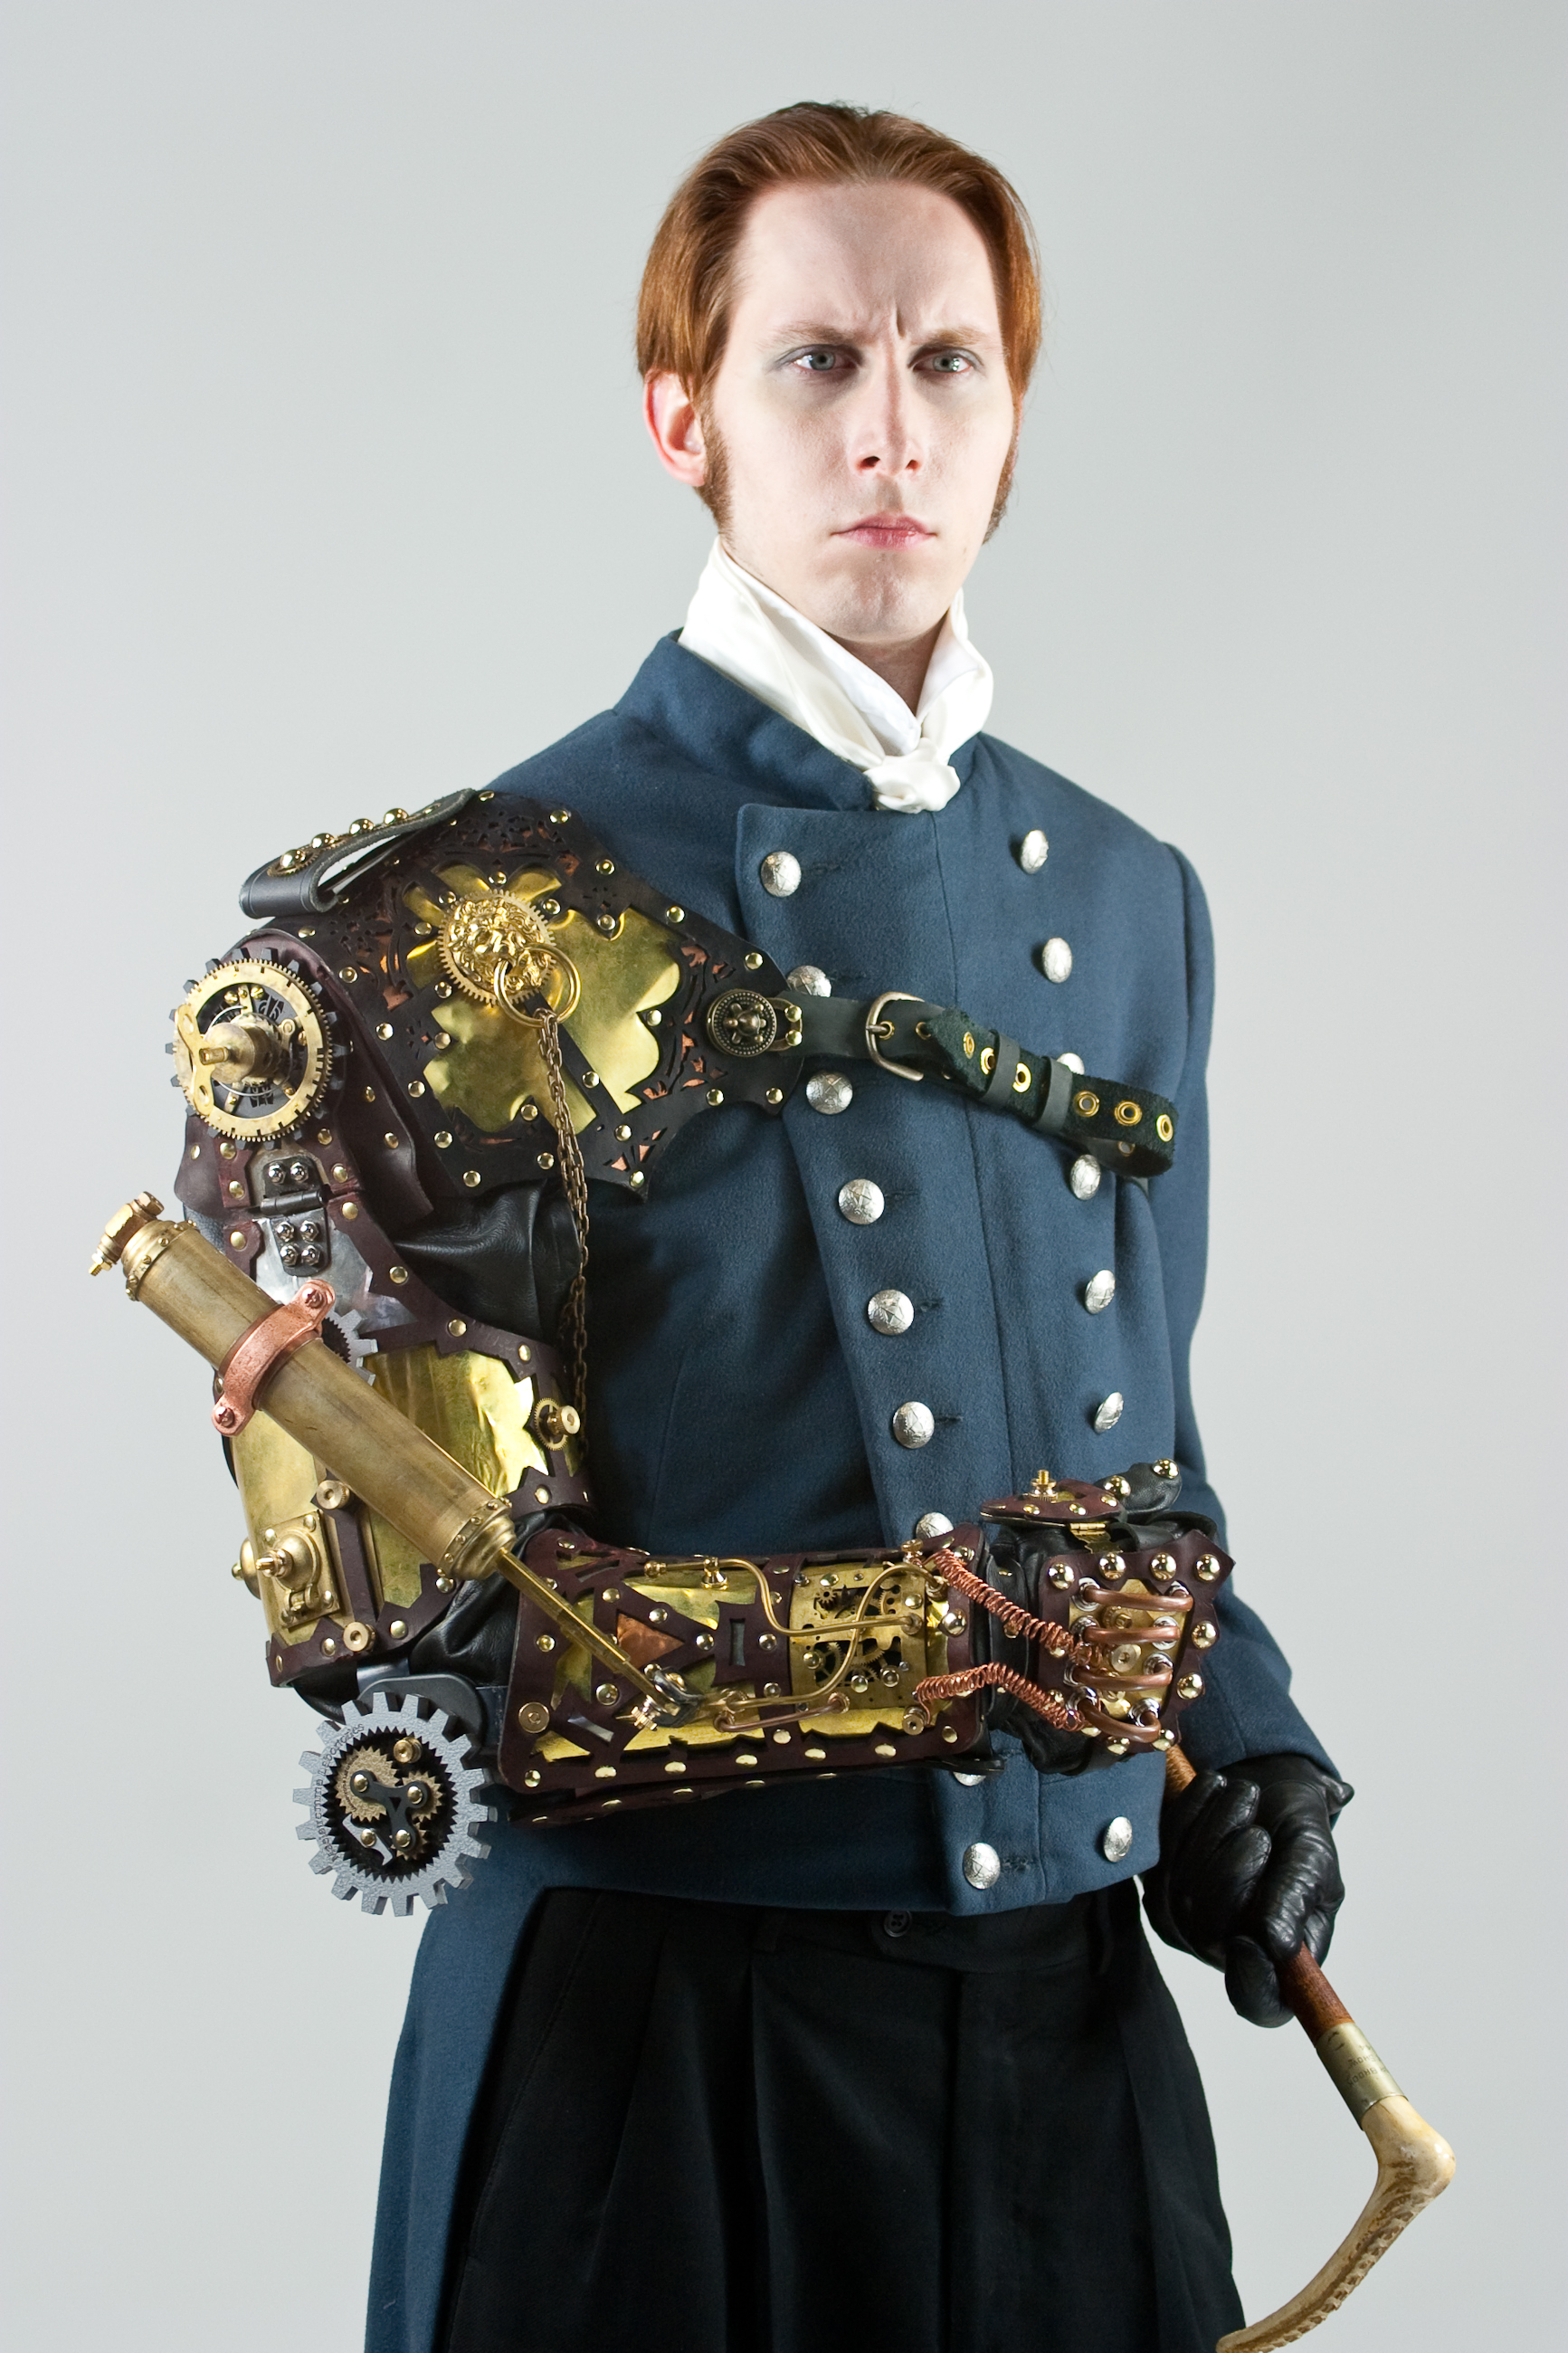 SteamPunk: Discussion and Steampunk Metal Craft